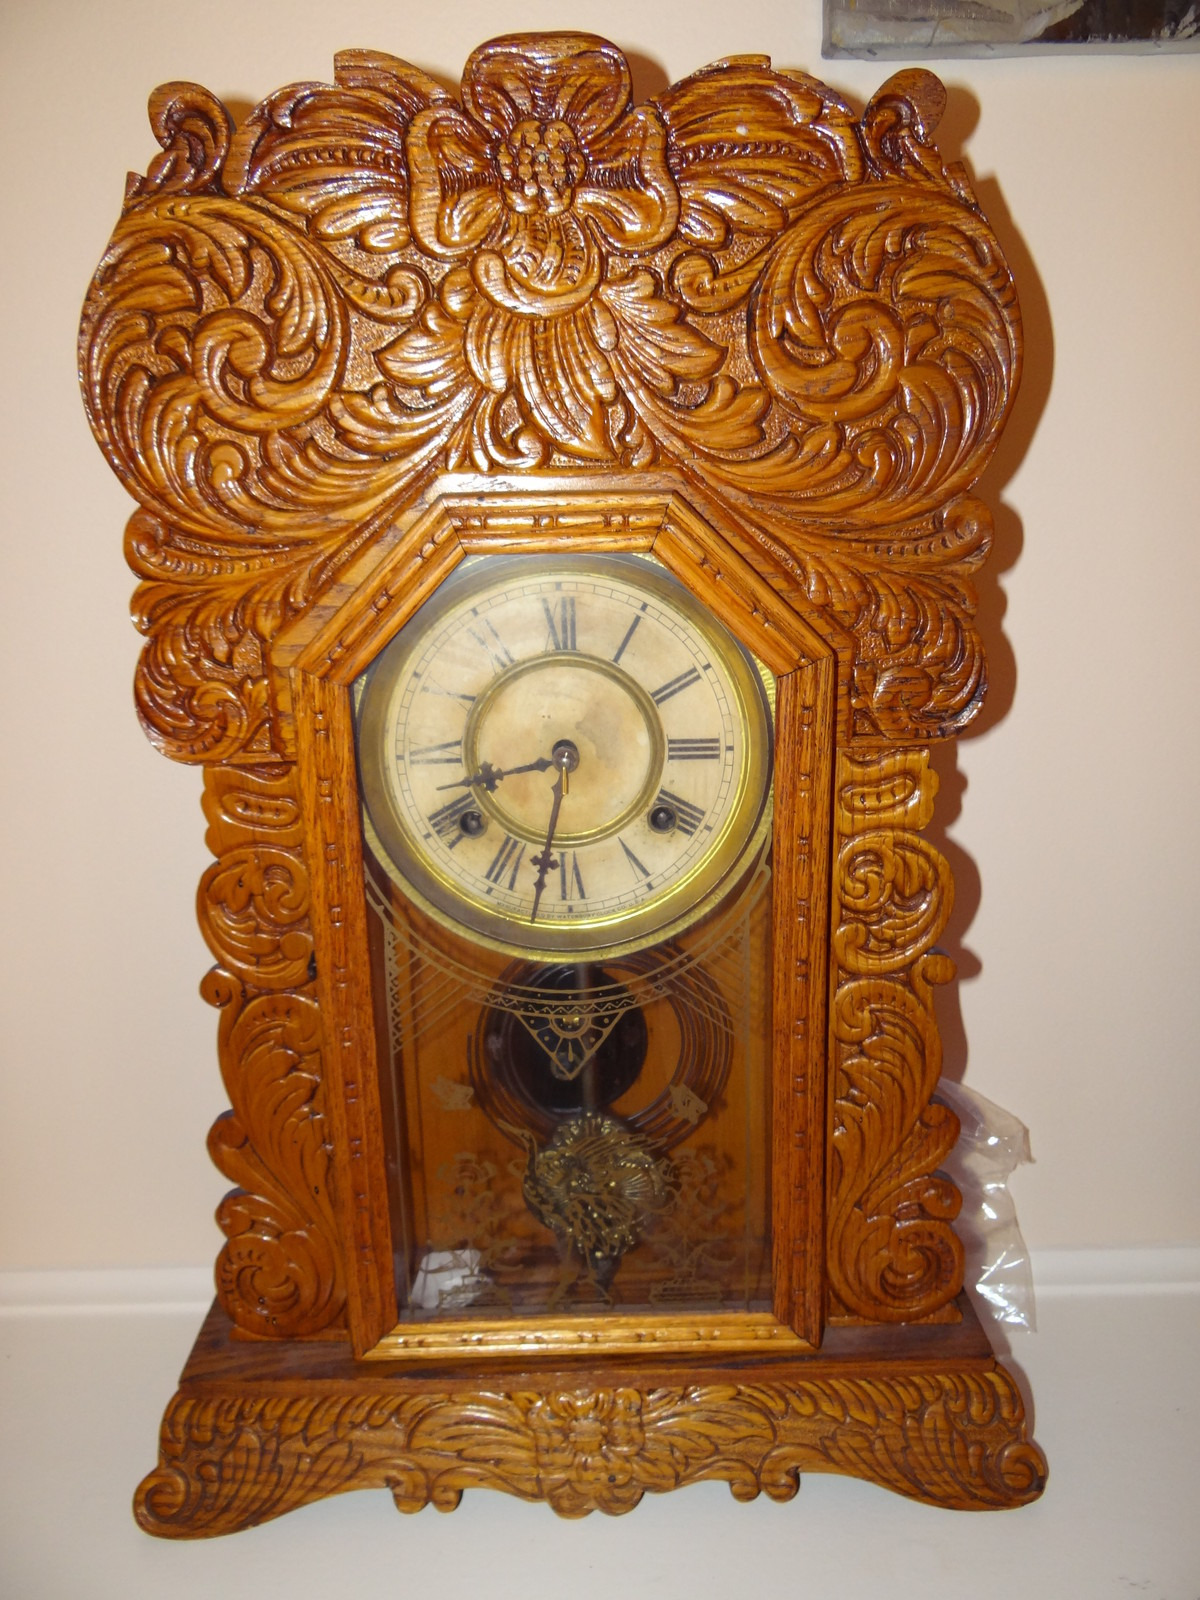 Antiques for Sale Online Furniture Best Of Antiques Collectionscana N Biz